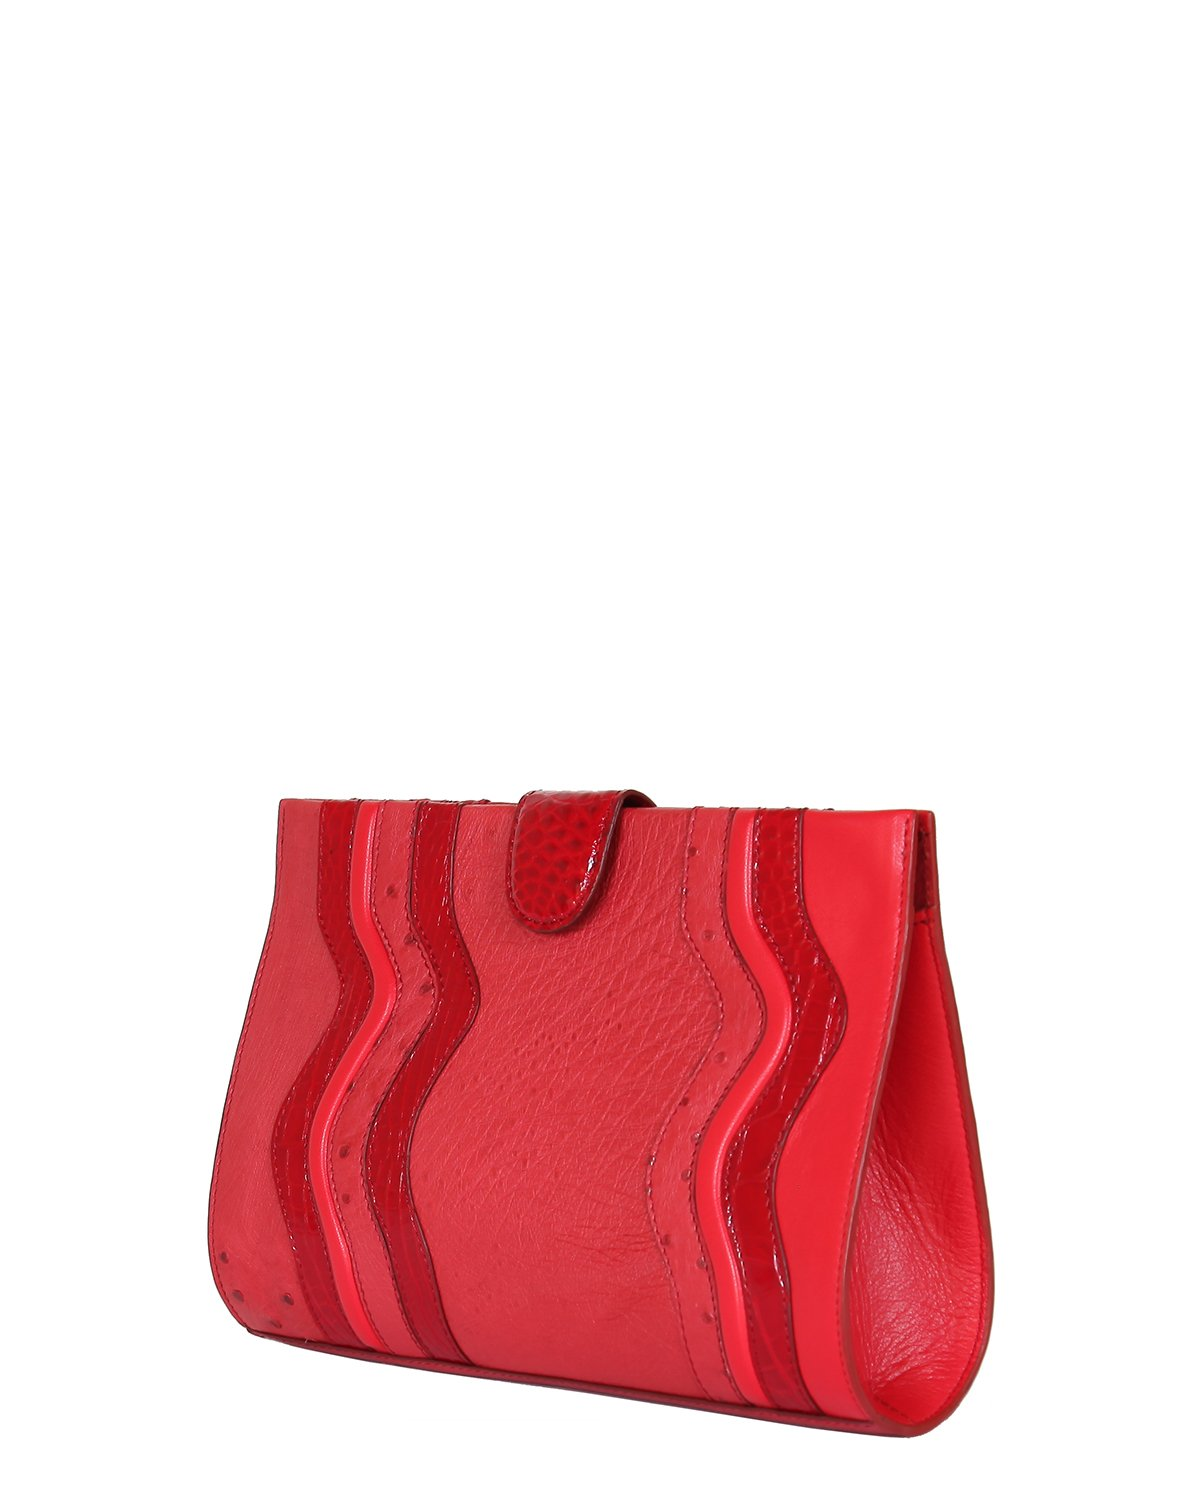 One of a Kind Beautifully Handcrafted Clutch in Genuine Ostrich Red with Red Genuine alligator wavy Trims Angle View